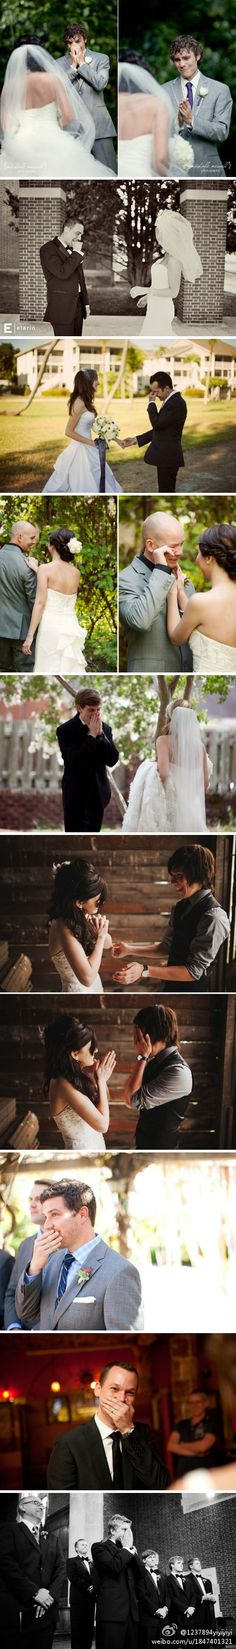 The reaction every girl dreams of and I have a good feeling this will be Evan on our big day too lol :)